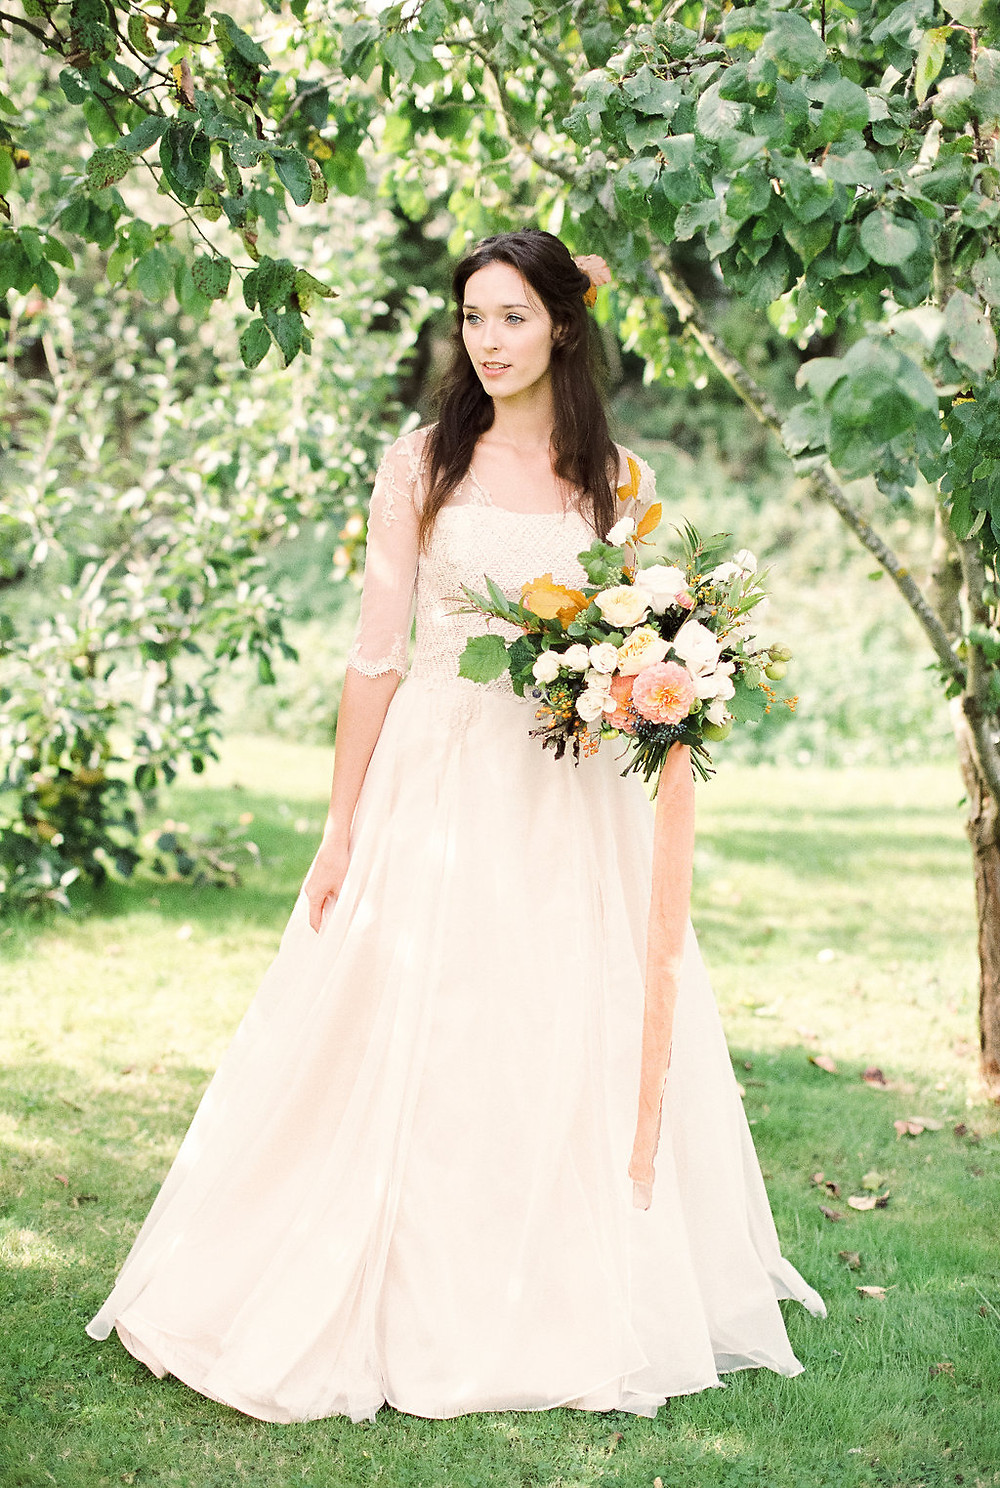 Jessica Turner Designs Autumn Wedding Inspiration, peach wedding dress for the untraditional bride